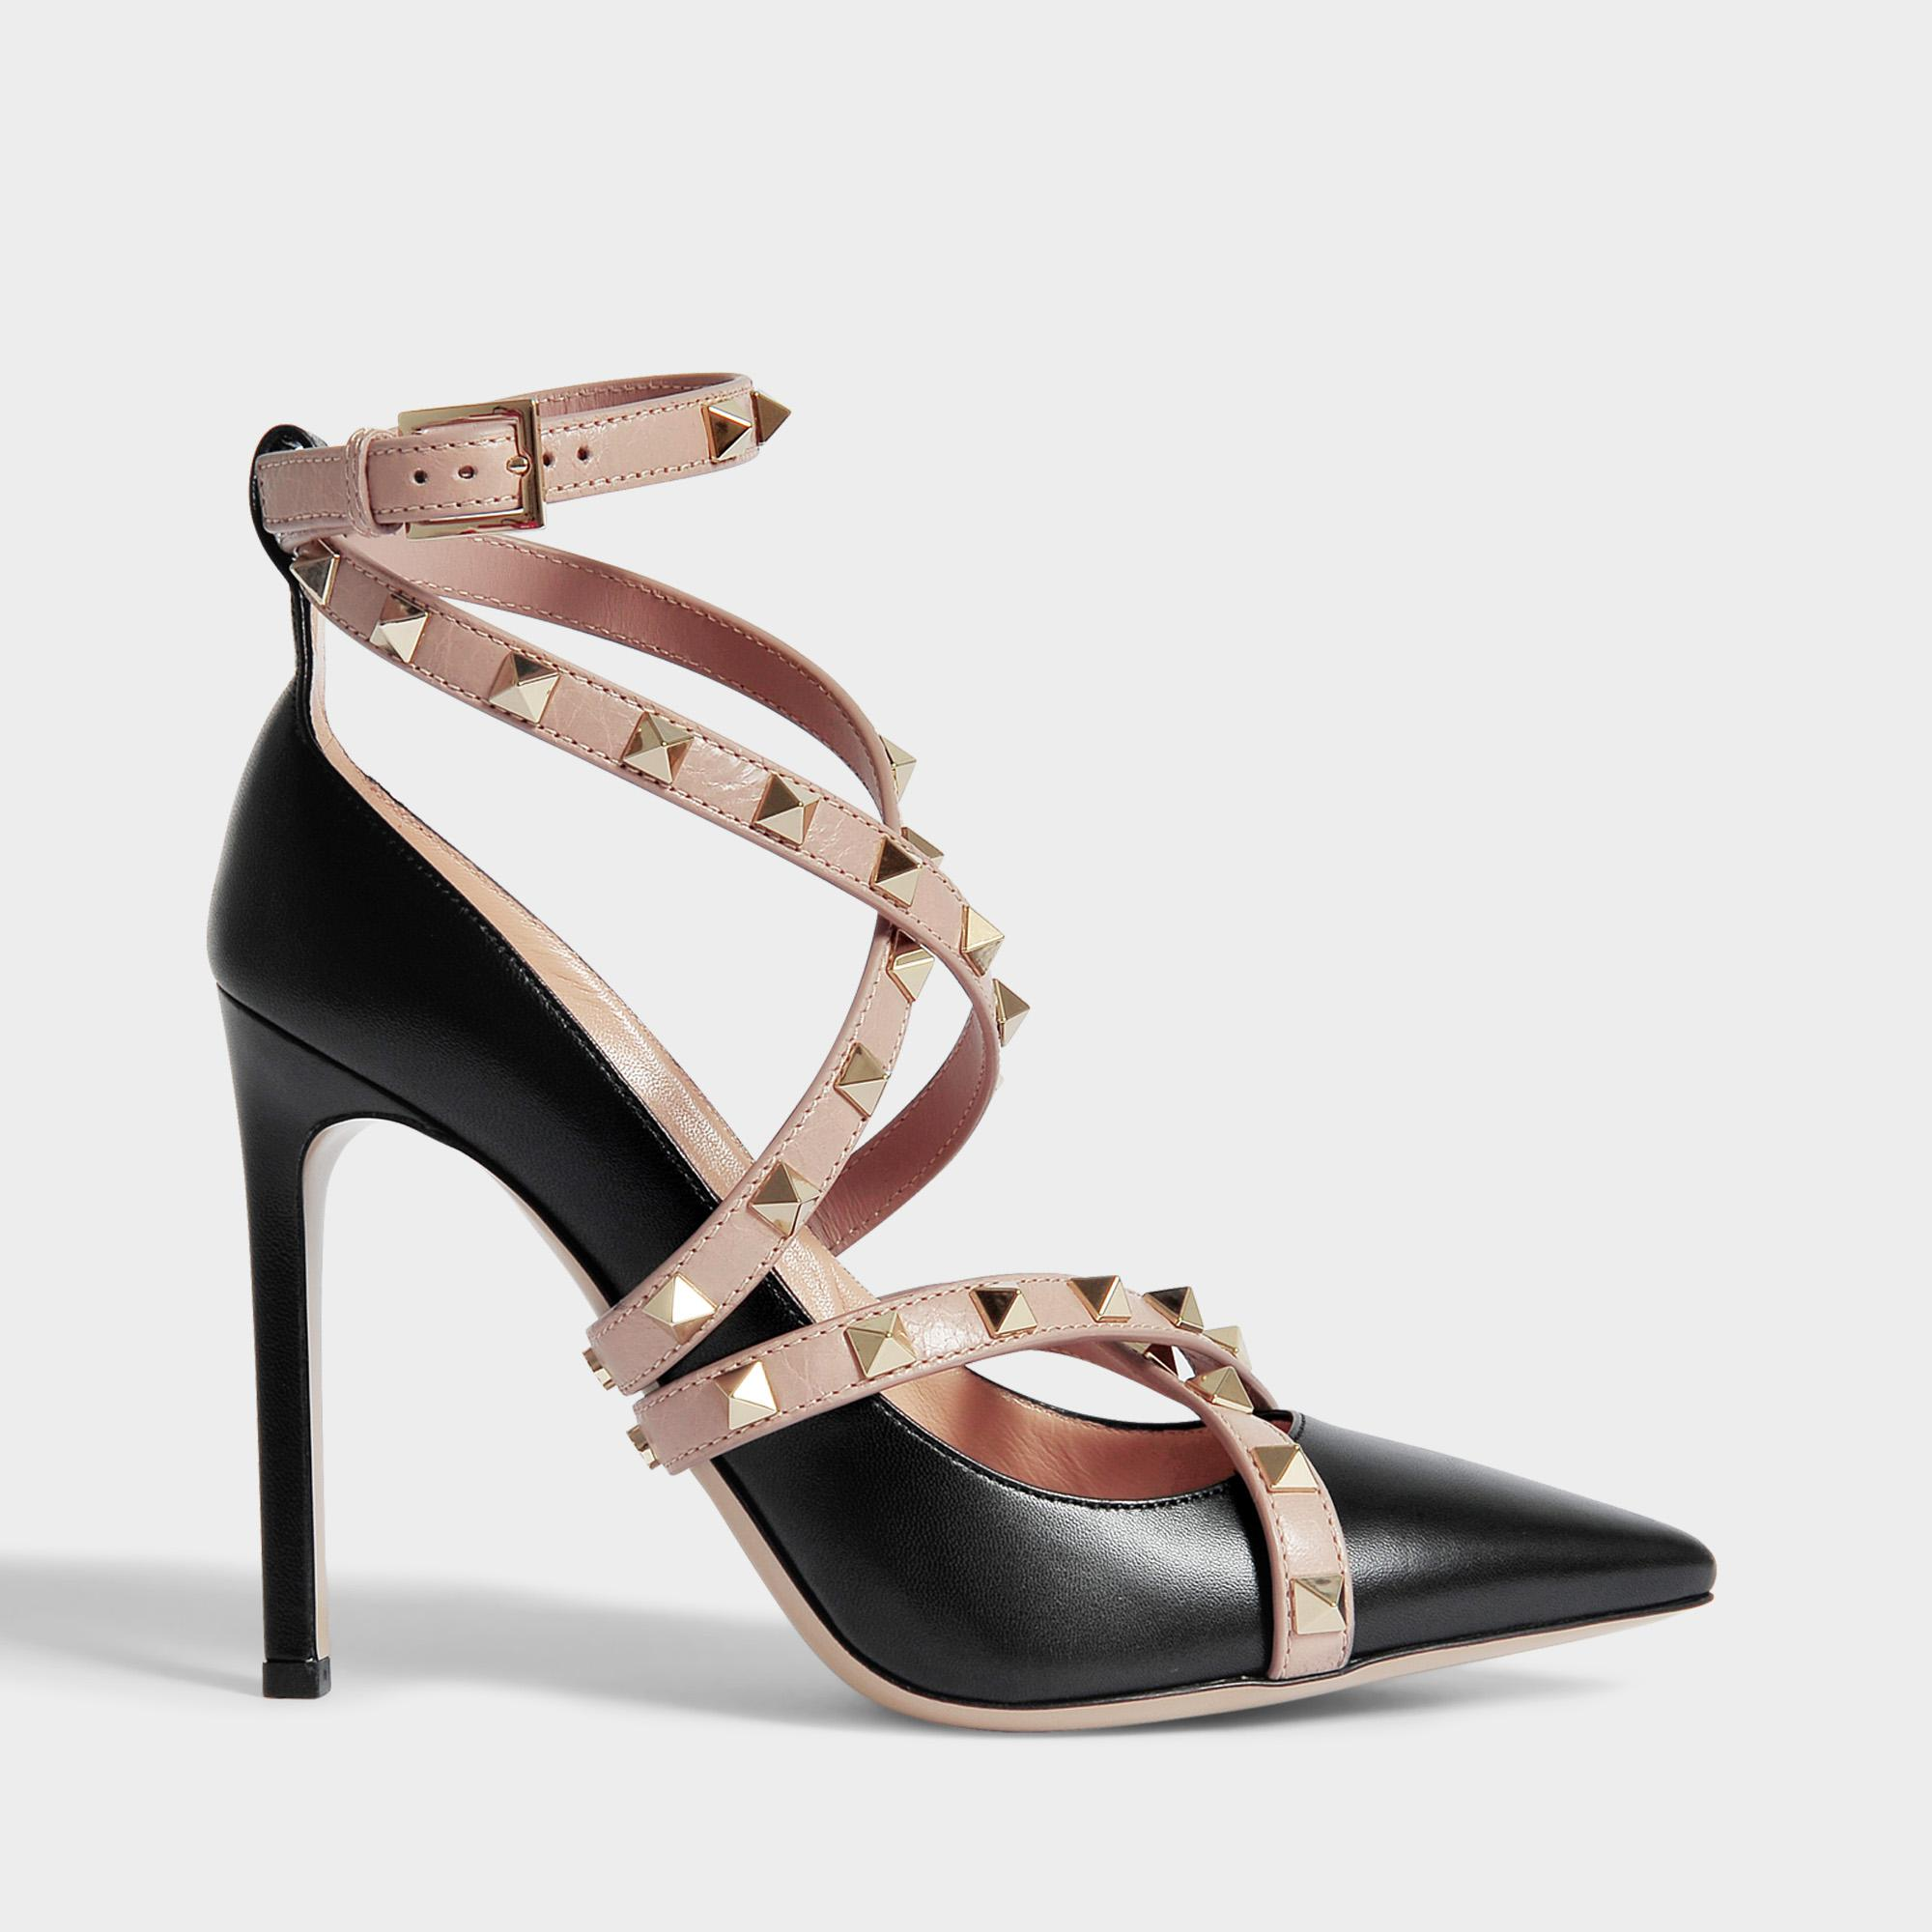 Rockstud Pointed Pumps with Ankle Strap in Black and Poudre Calfskin Valentino ulZJsIiIGz